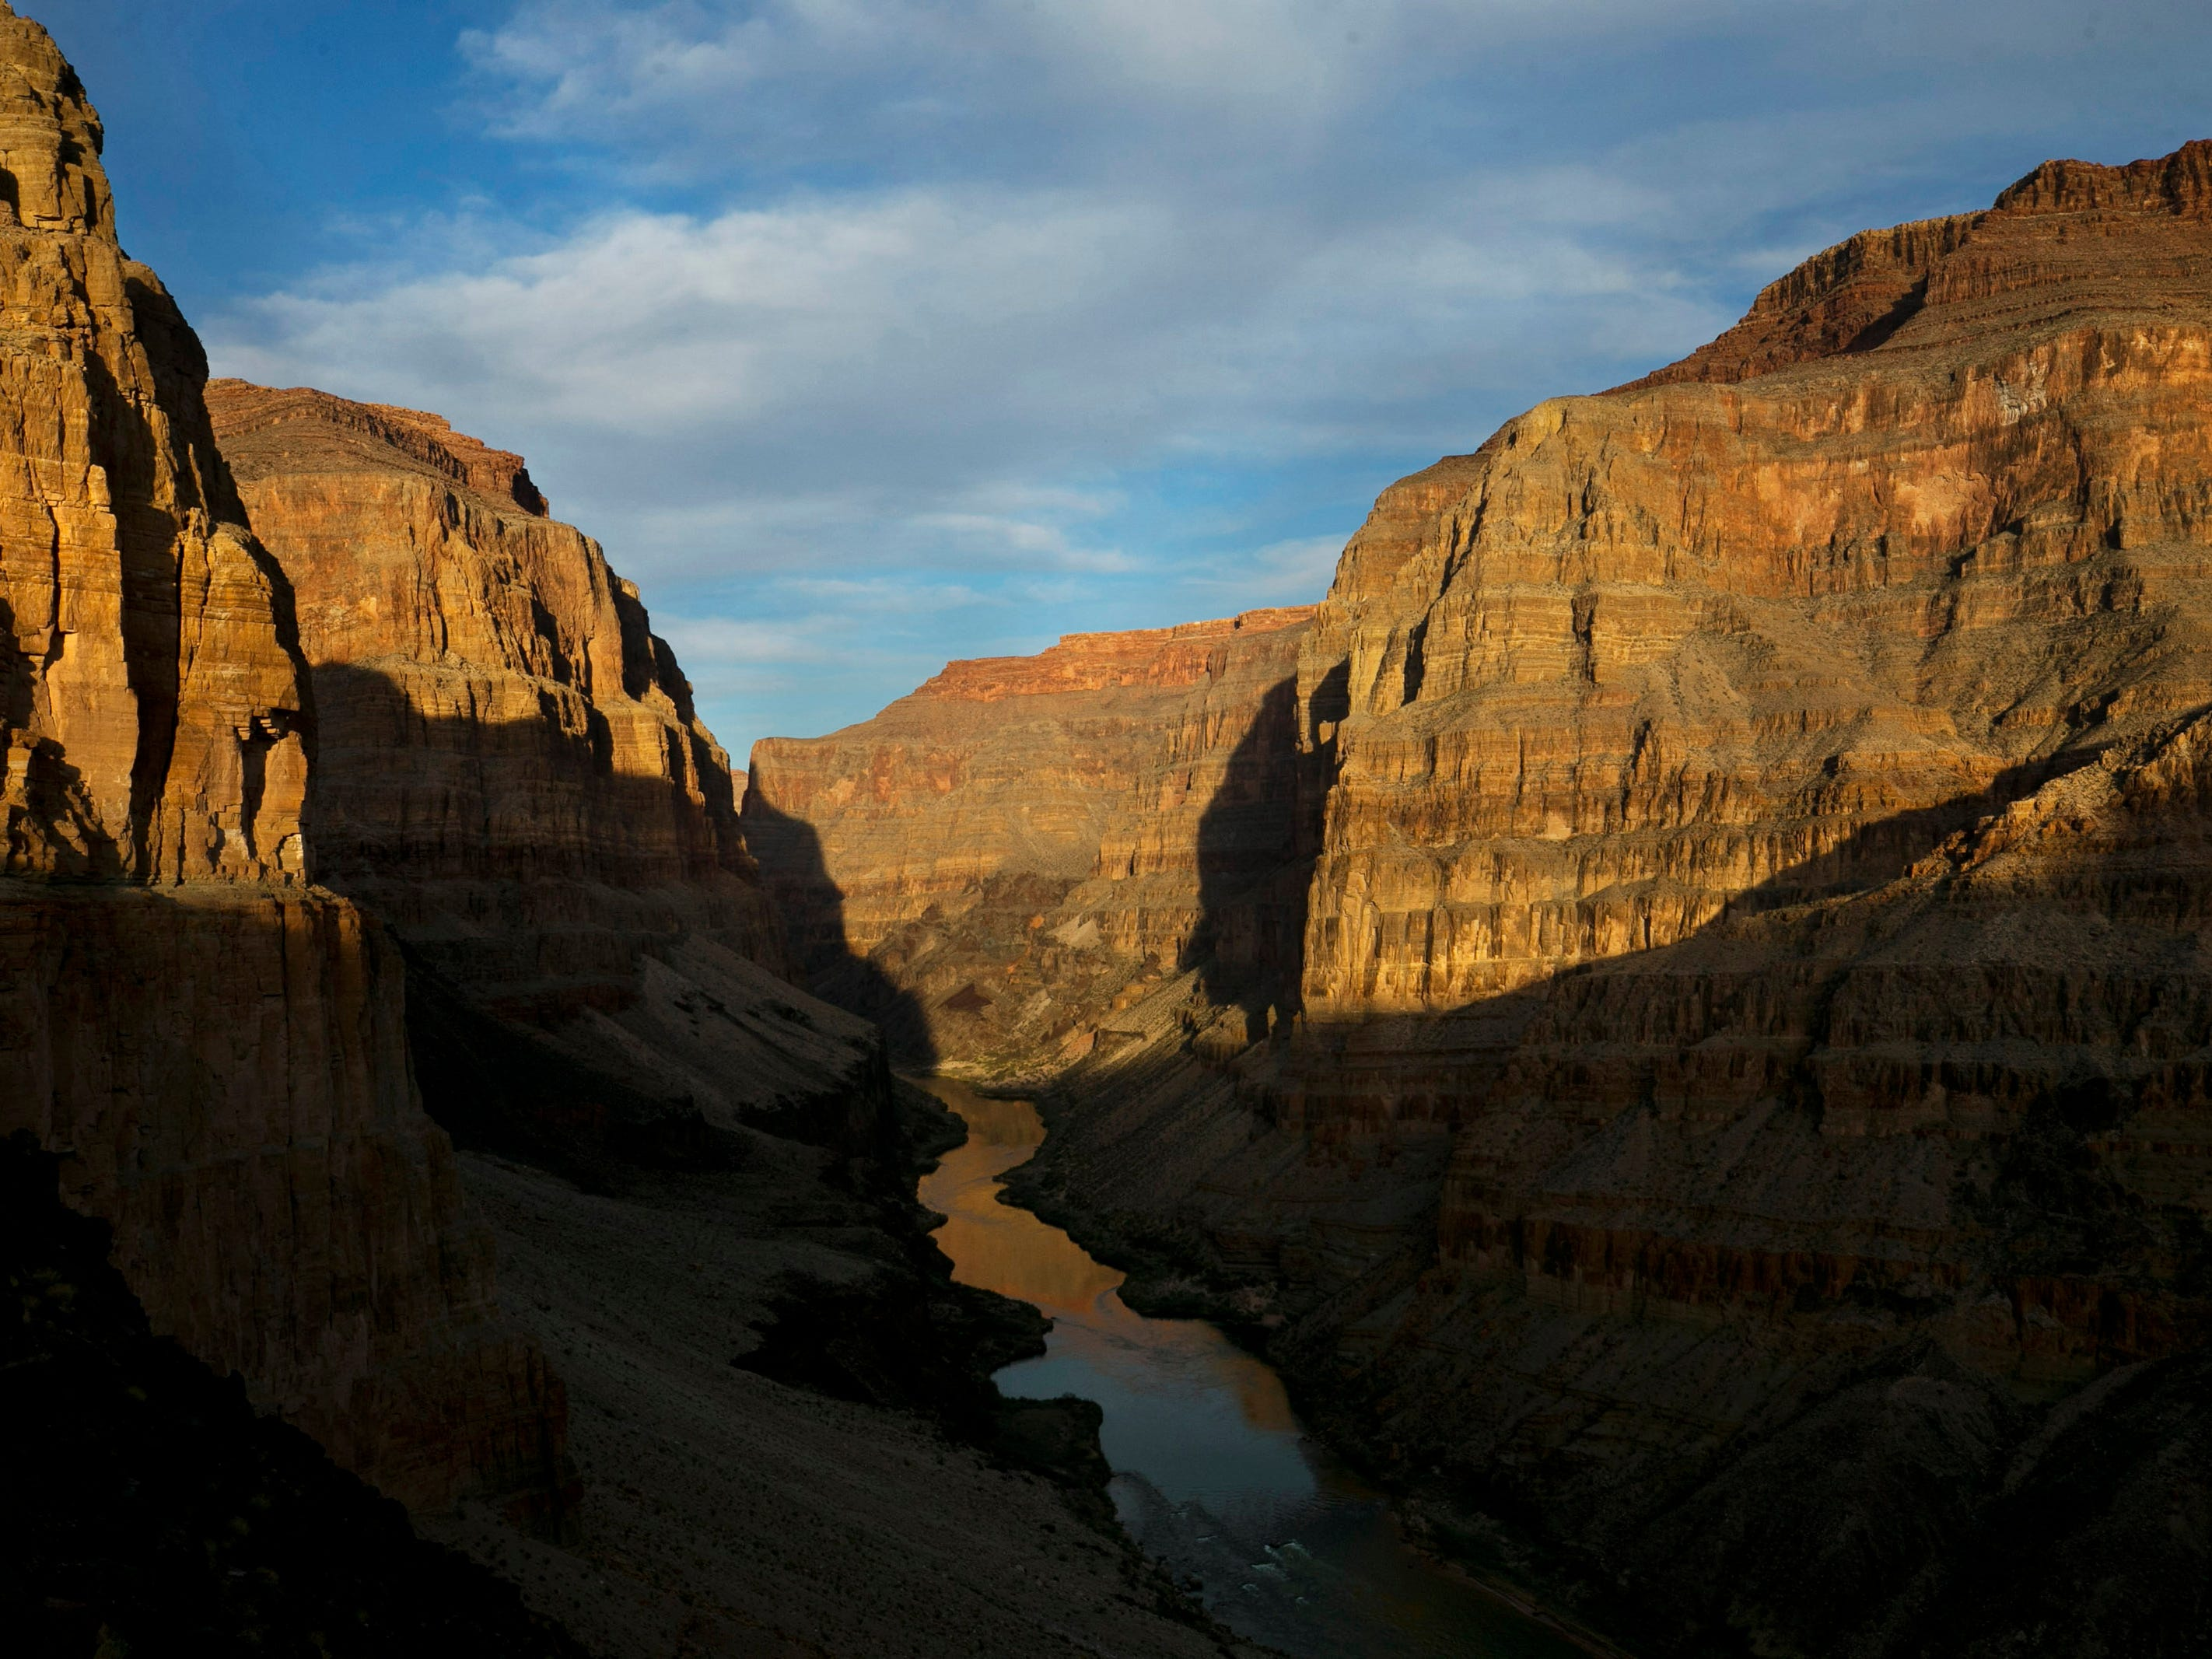 The view of the Colorado River the western part of Grand Canyon National Park on February 26, 2018.